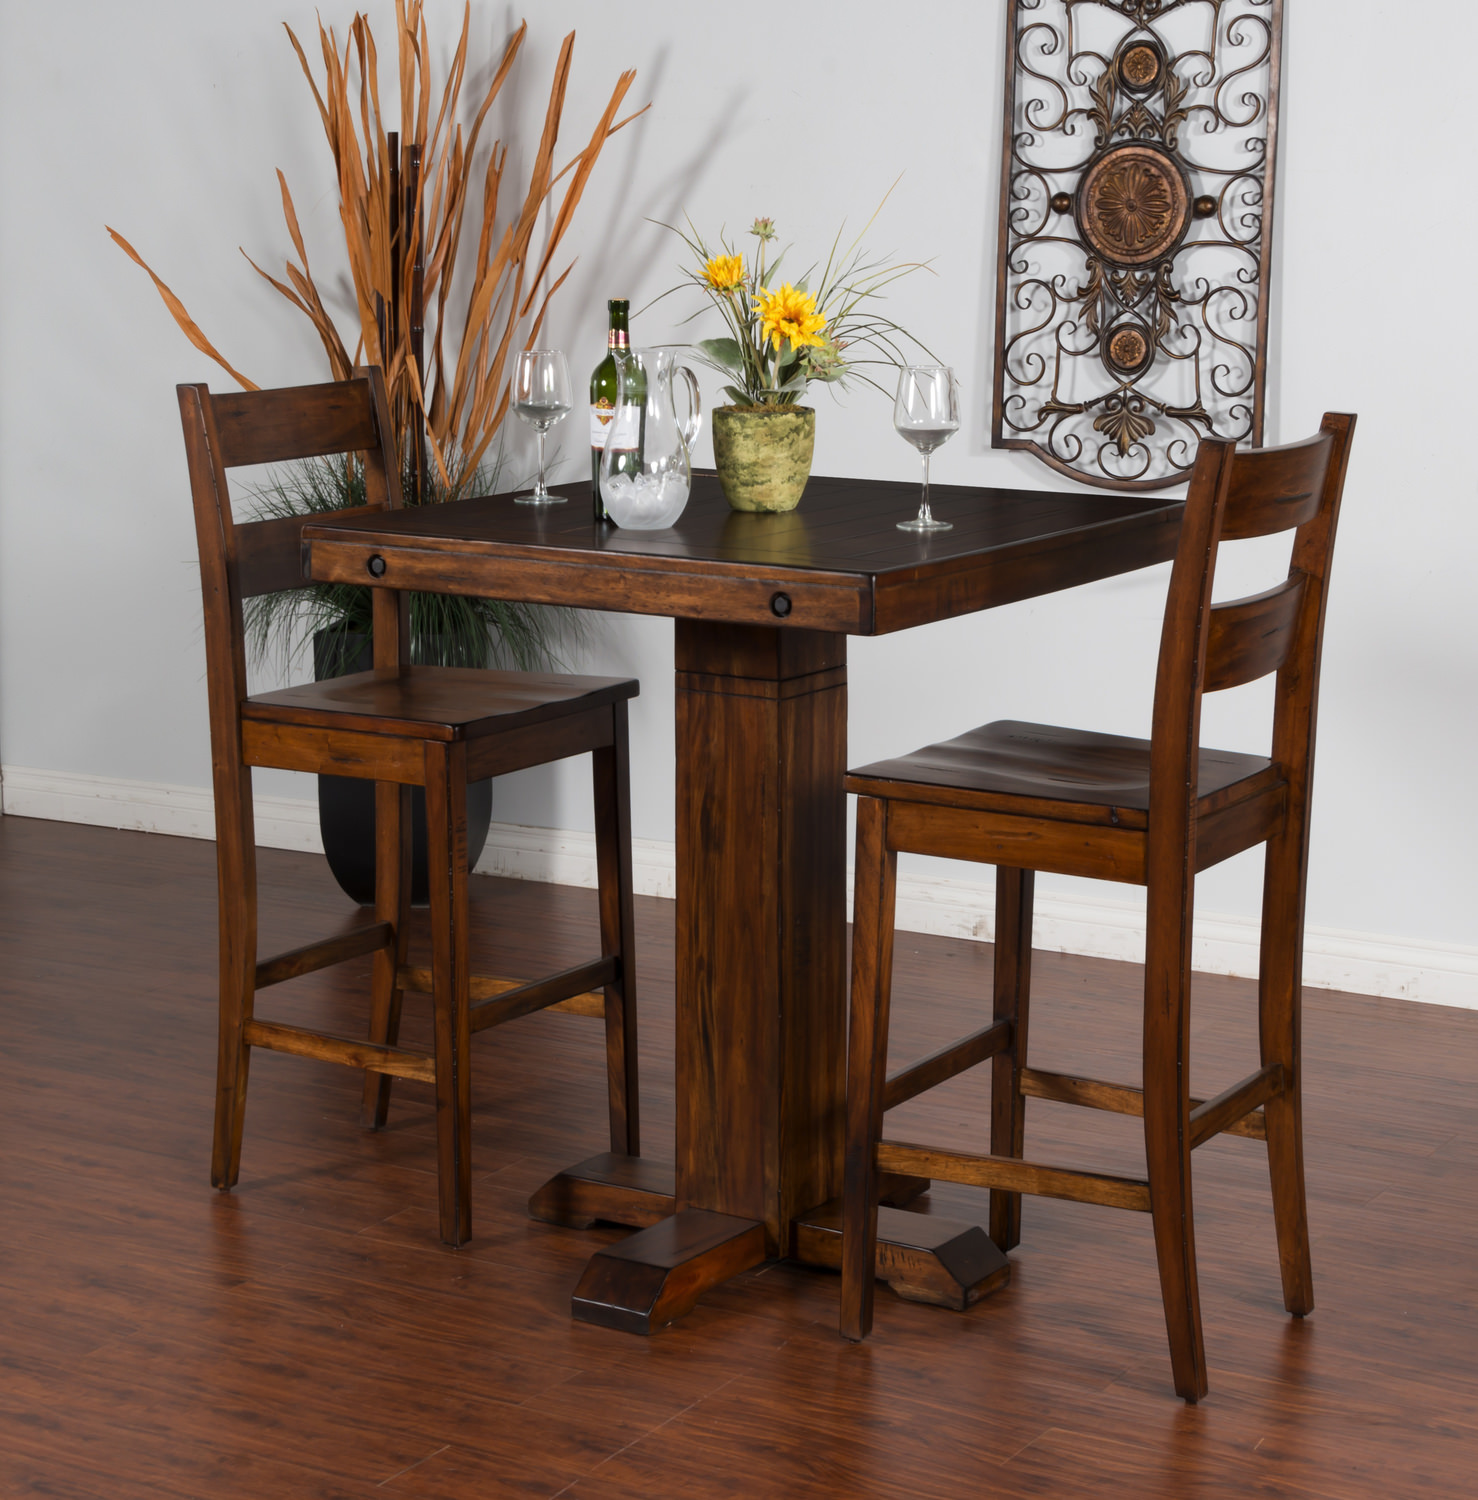 Counter Height Table Sets Bargain Furniture Images